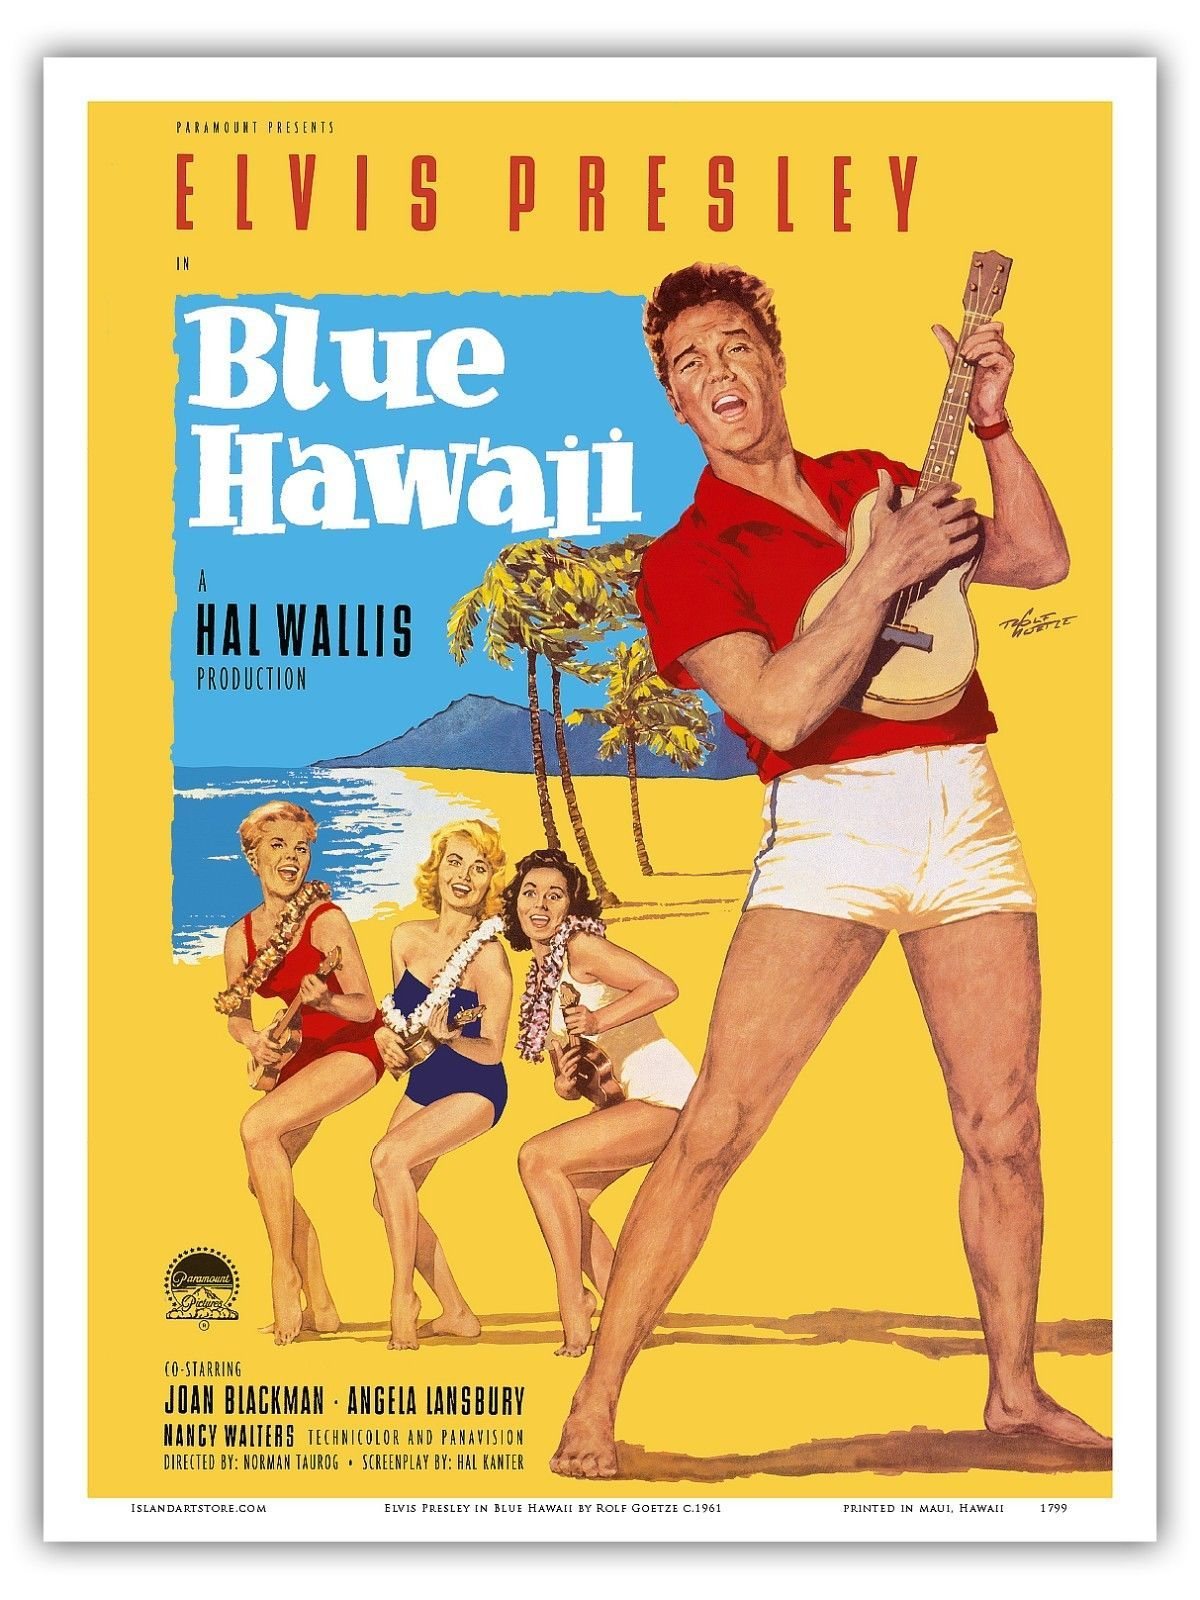 Elvis Presley In Blue Hawaii Goetze 1961 Vintage Film Movie Poster Print